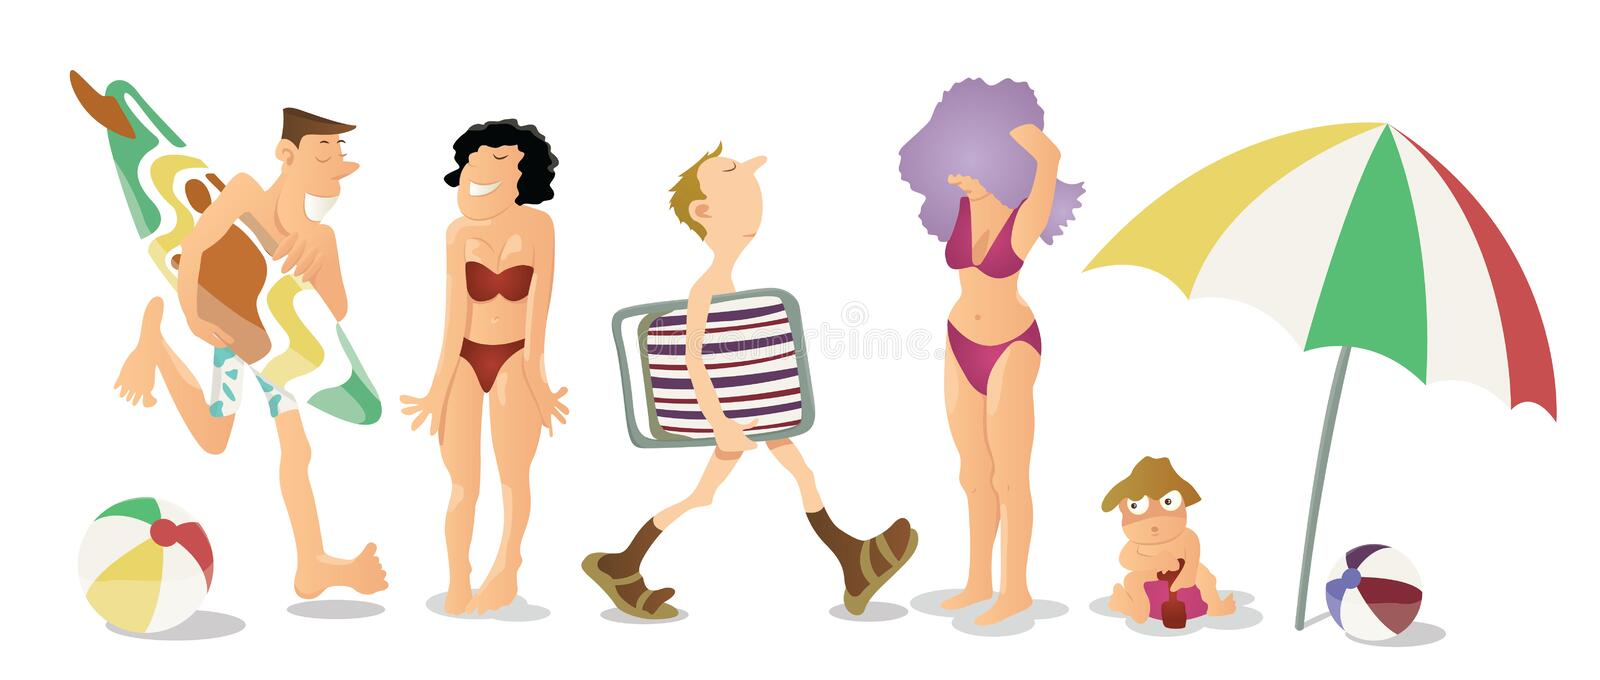 Young people on the beach vector illustration